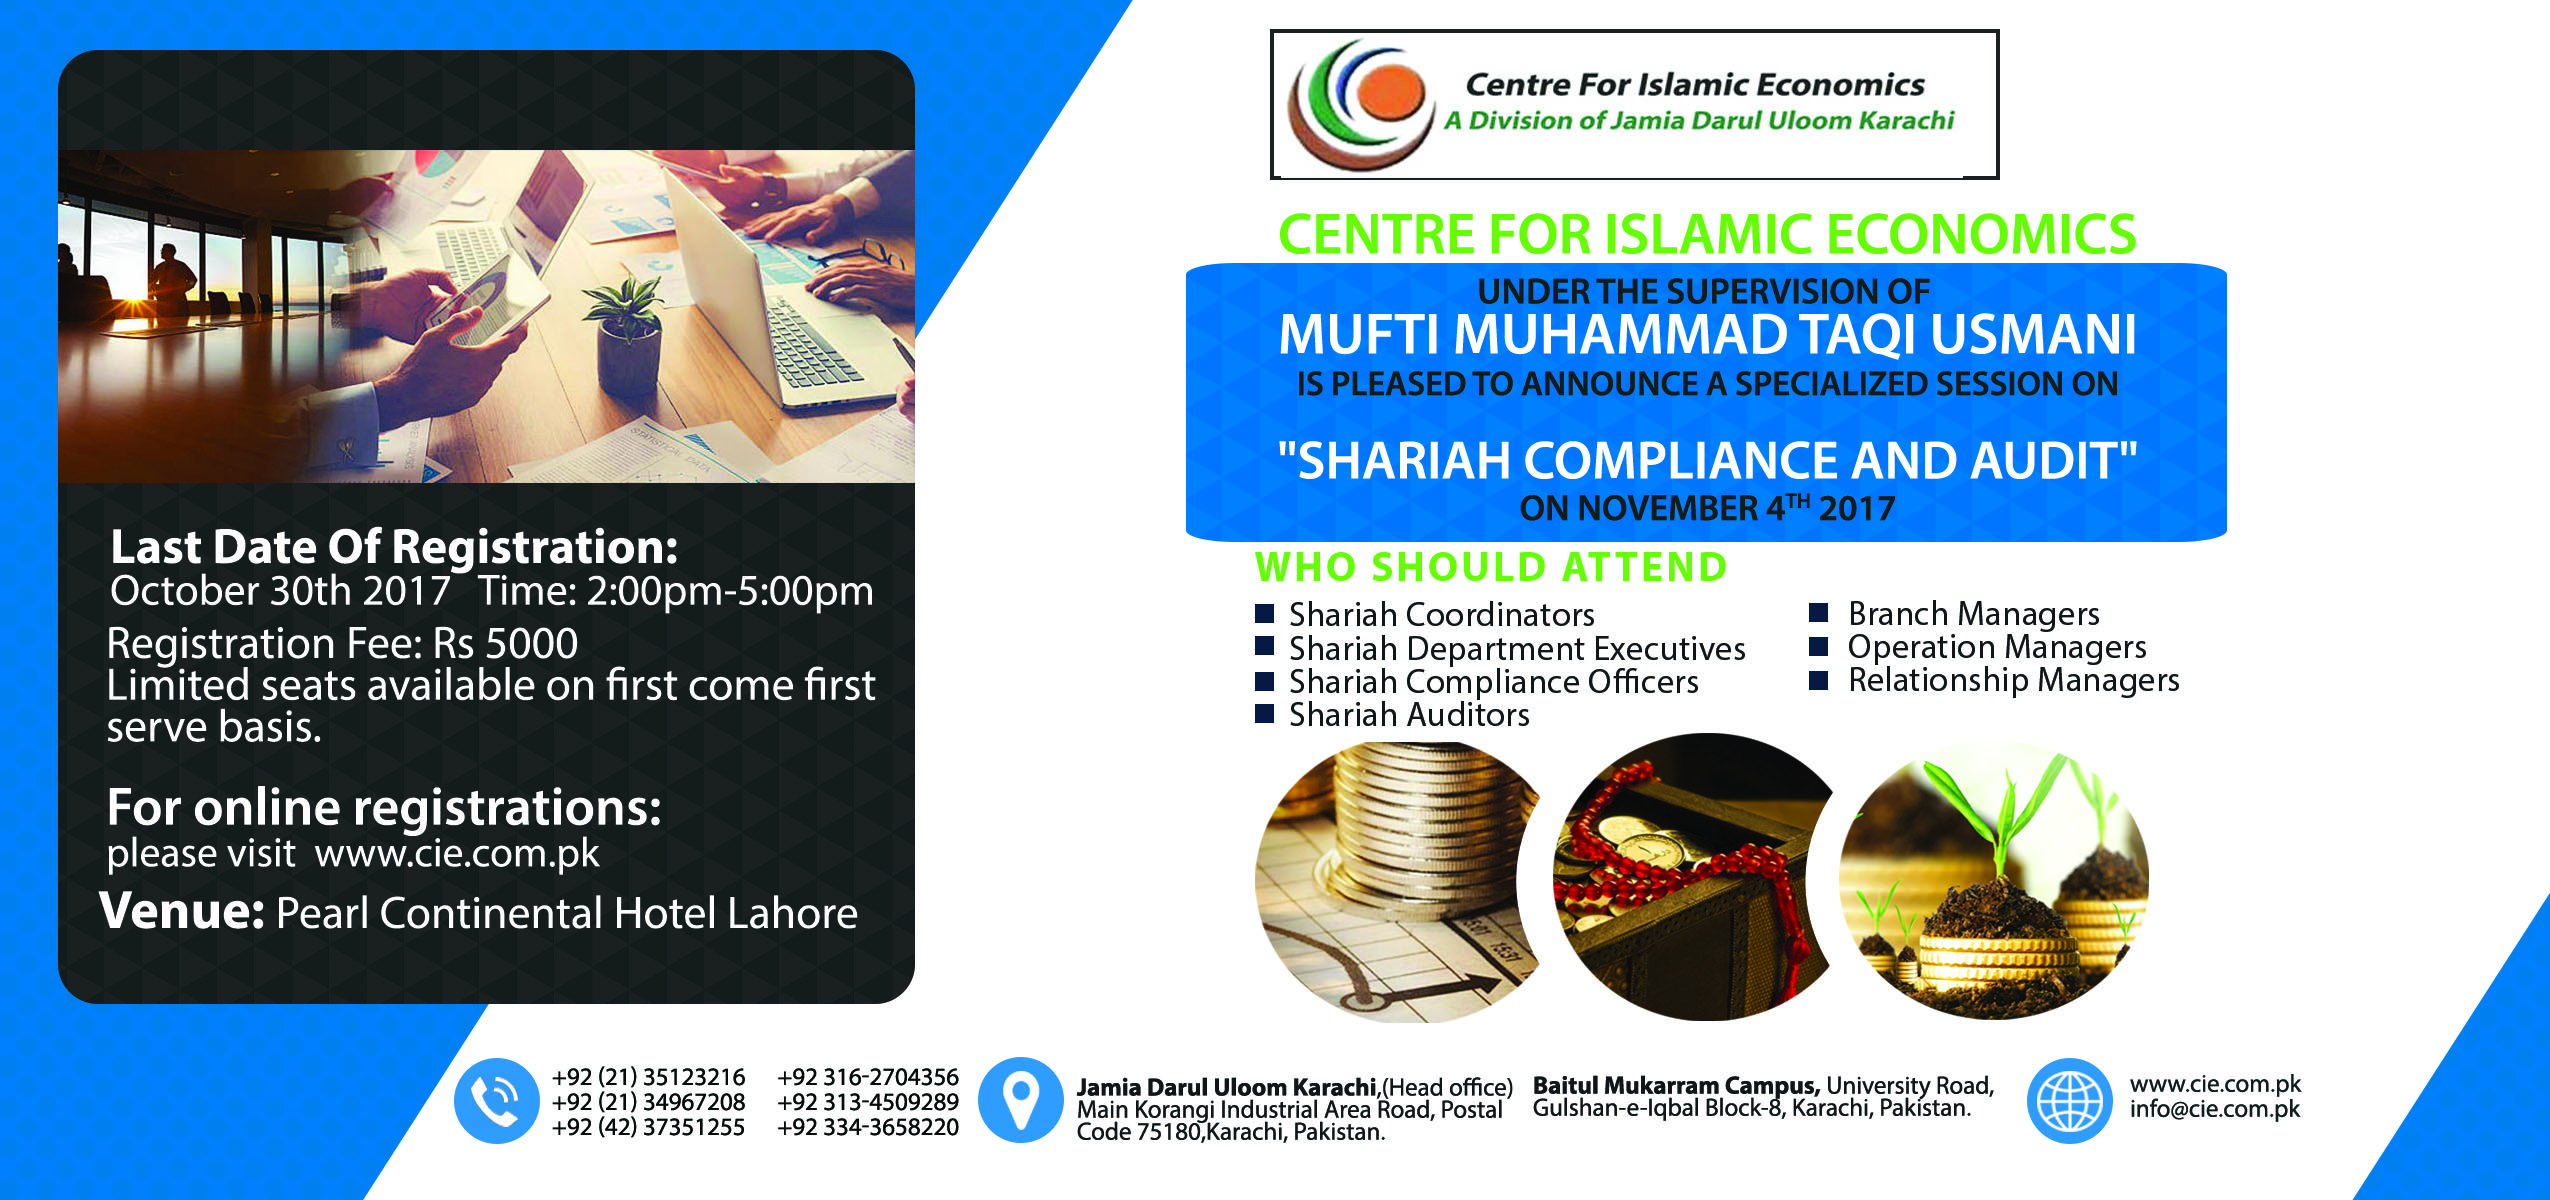 Shariaha Compliance and Audit